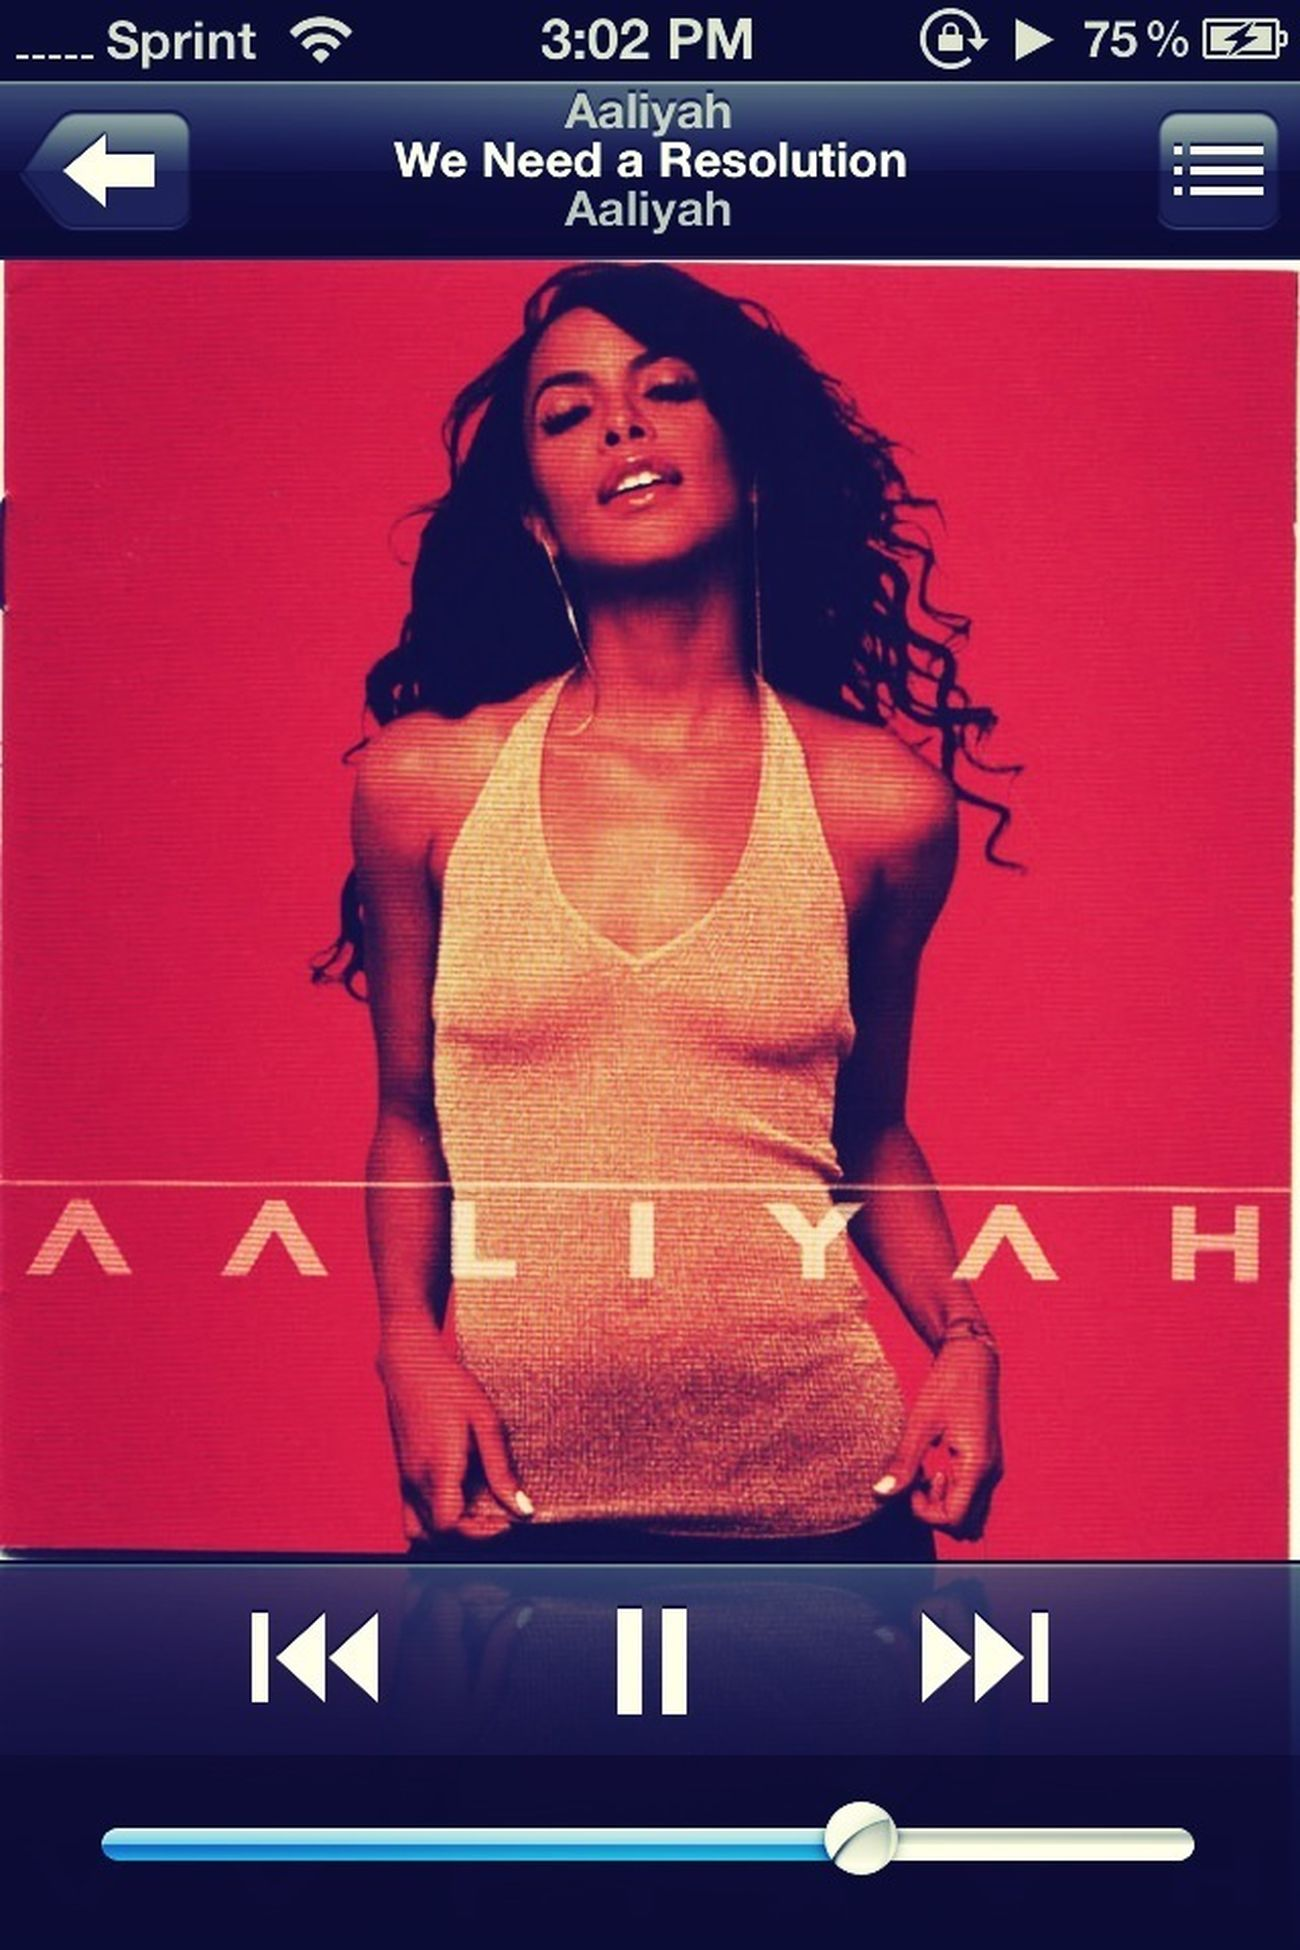 Rest In Peace, Aaliyah. ❤